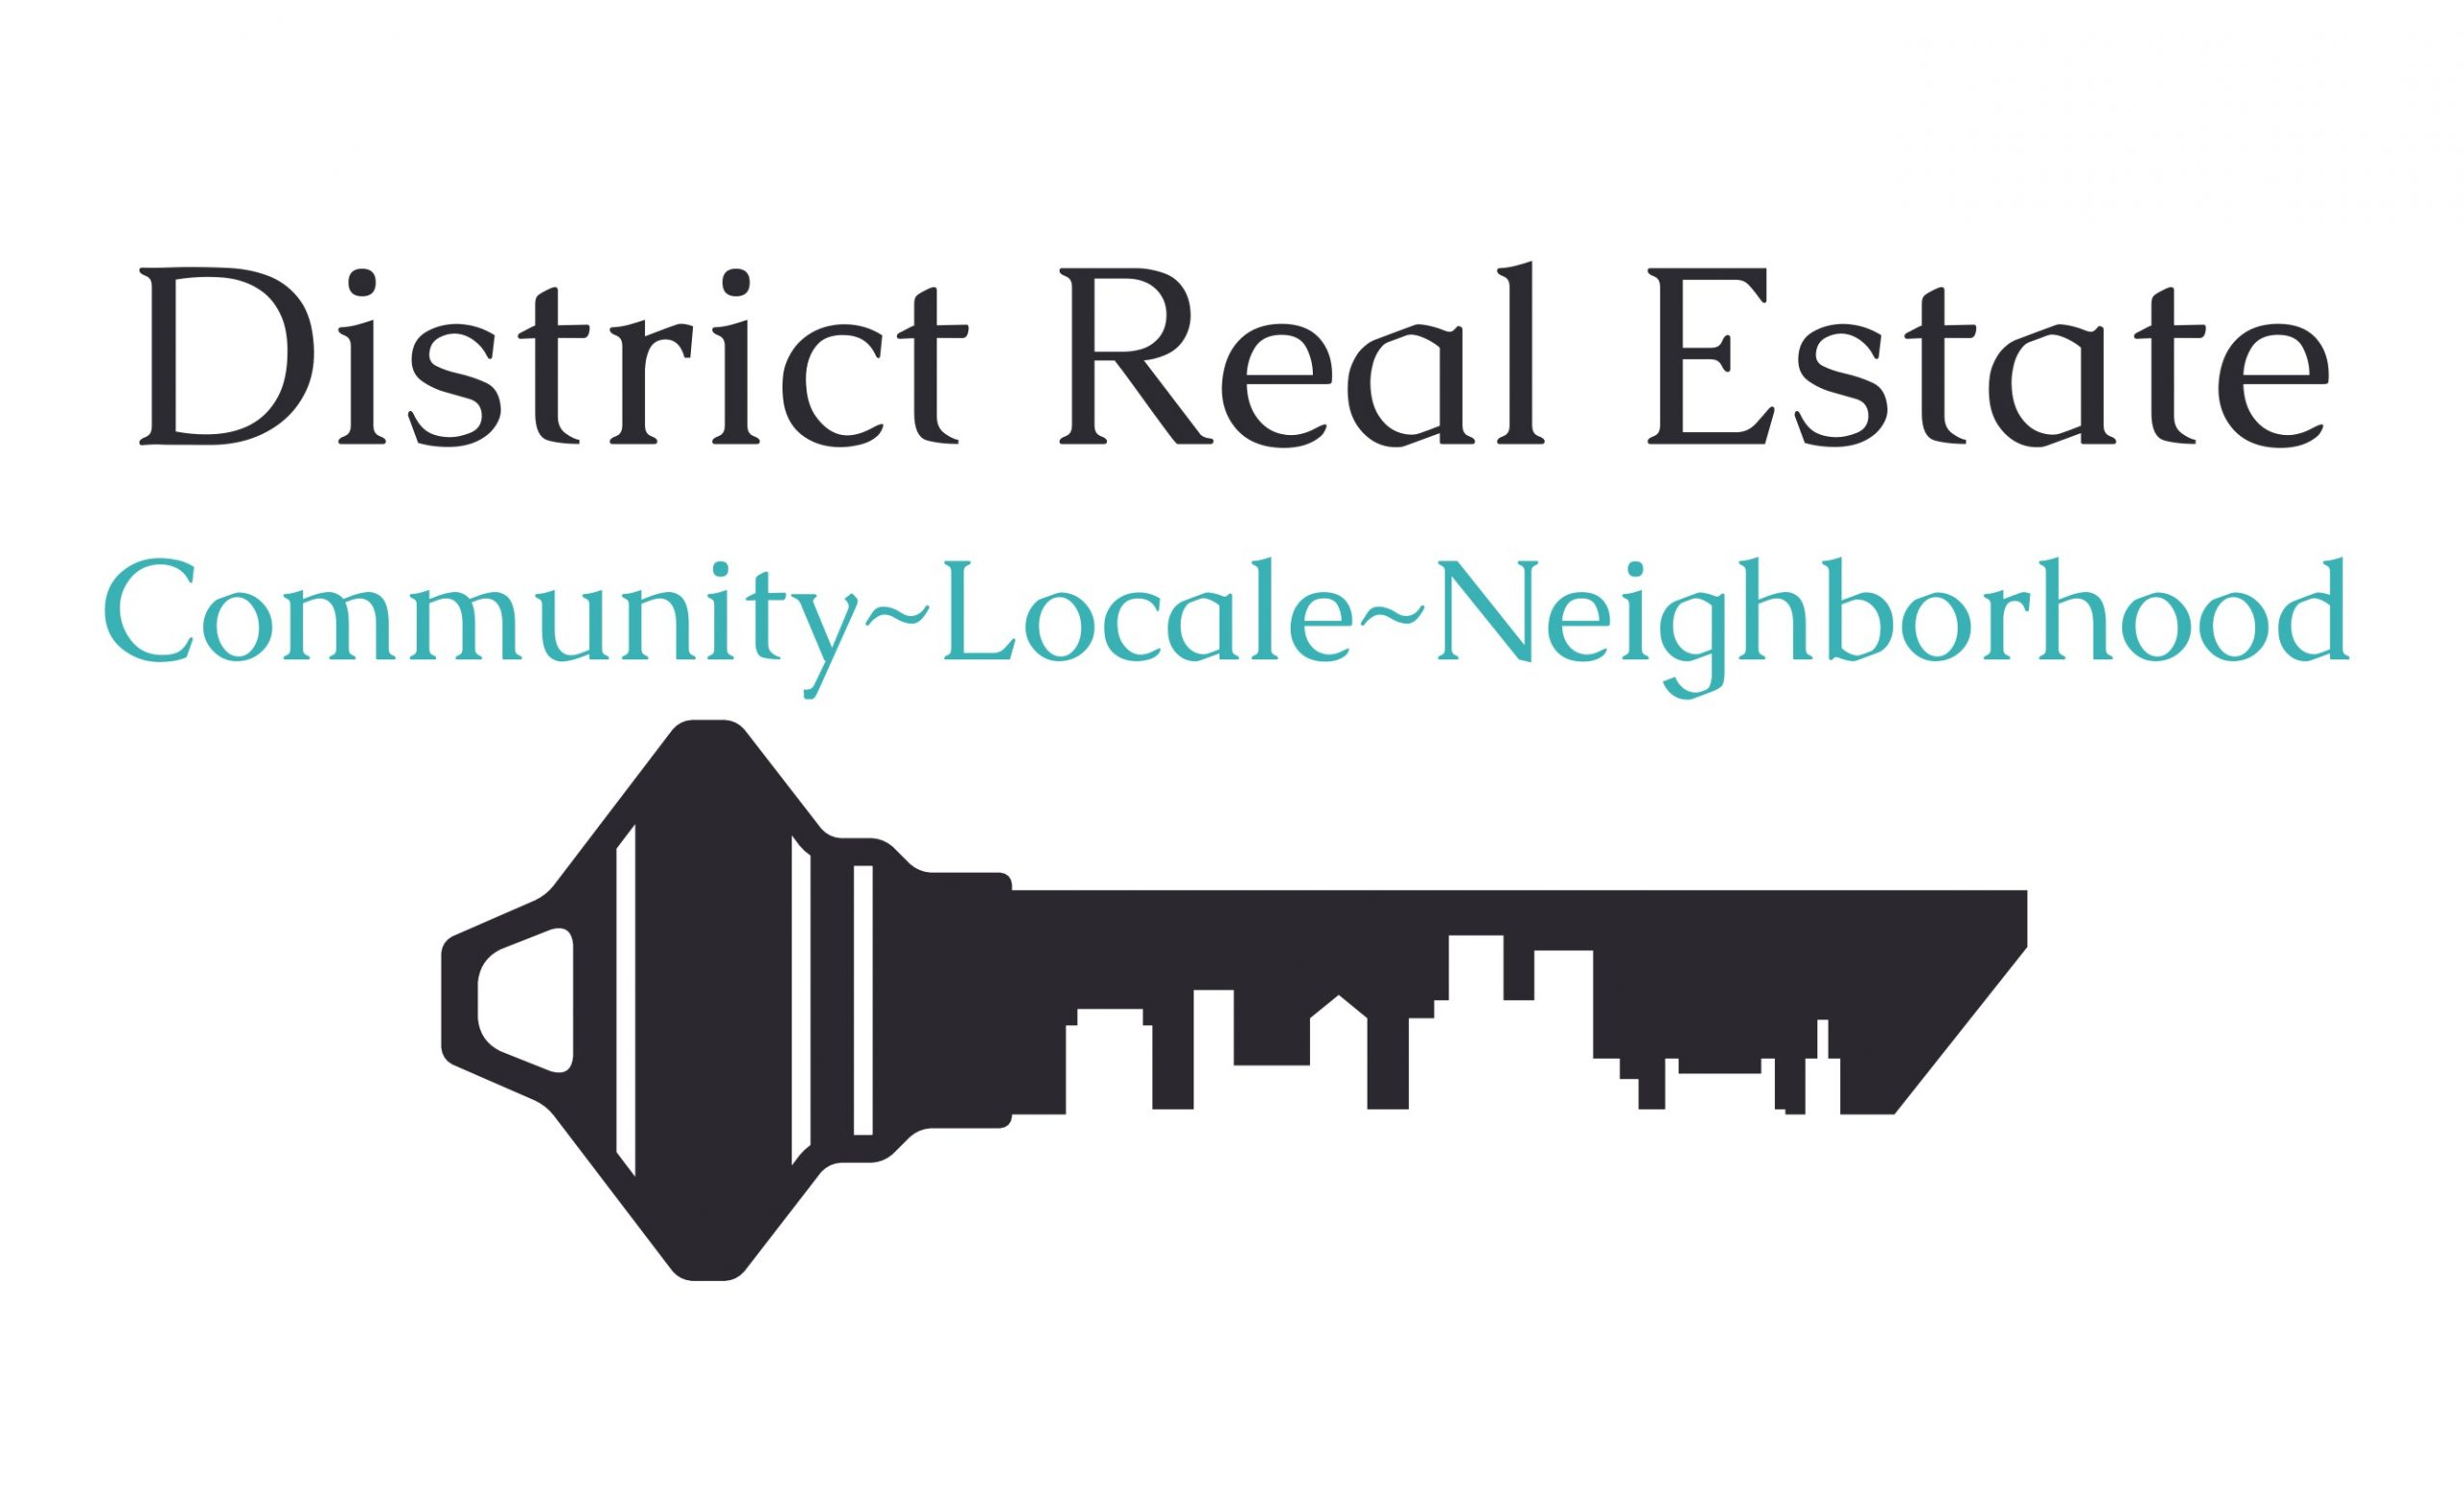 District Real Estate, LLP